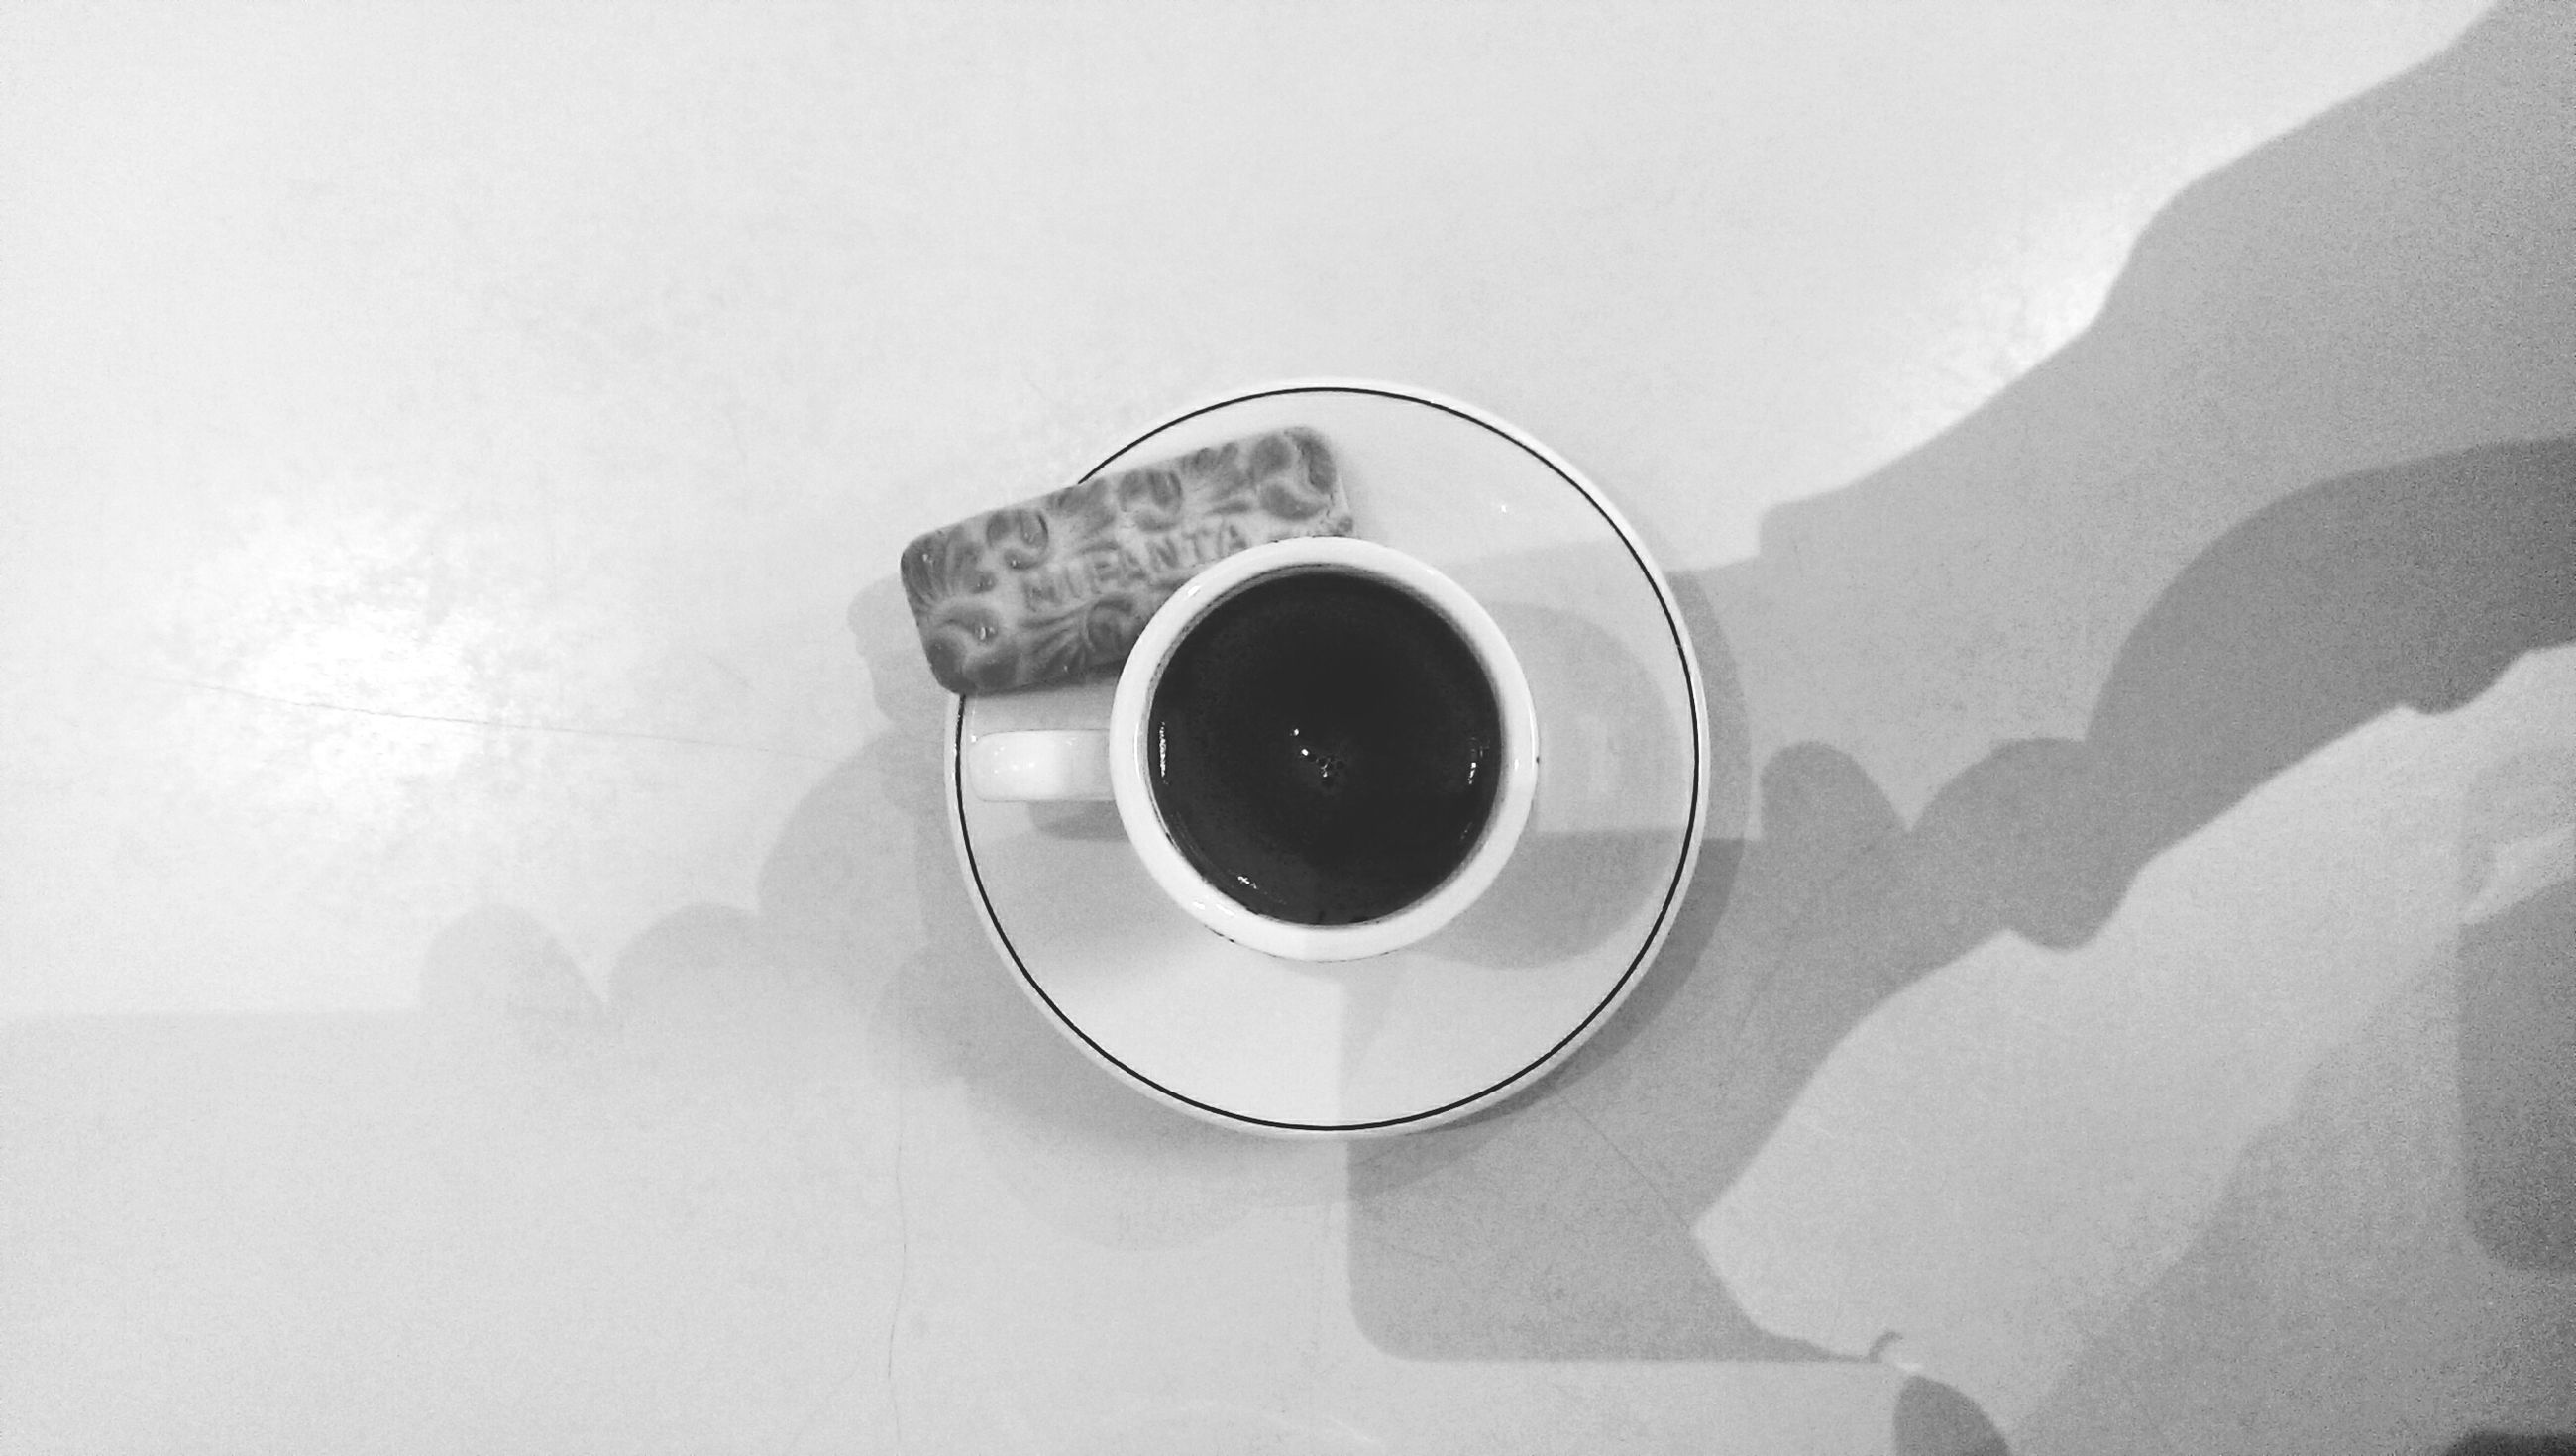 indoors, coffee cup, copy space, still life, wall - building feature, directly above, close-up, high angle view, white background, circle, refreshment, technology, drink, table, white color, no people, single object, studio shot, cup, built structure